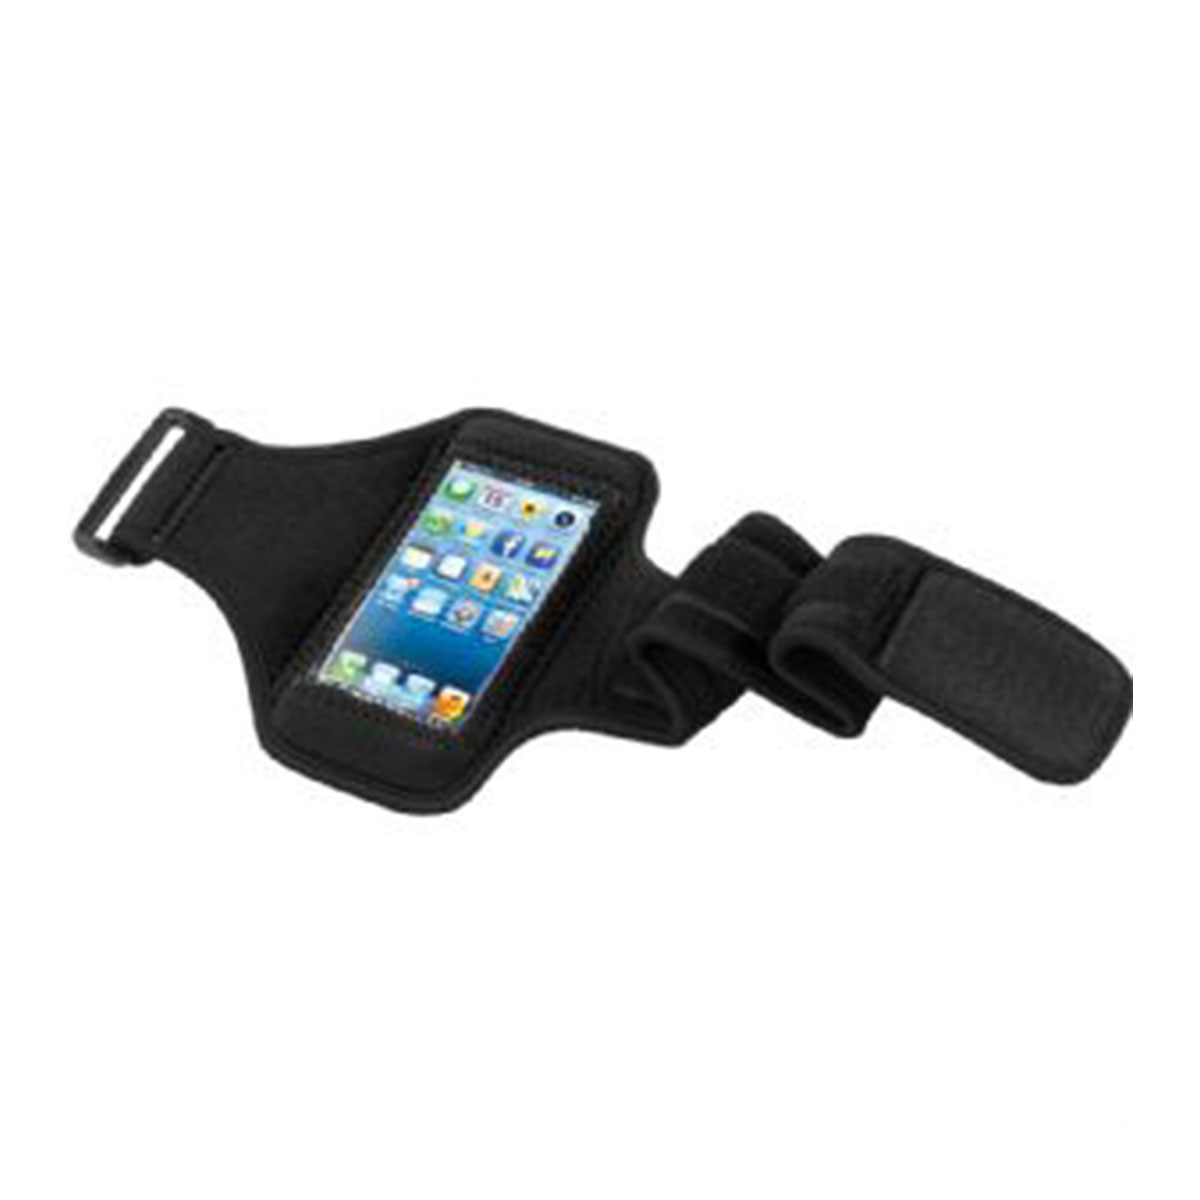 Phone Holder Arm Band-Black